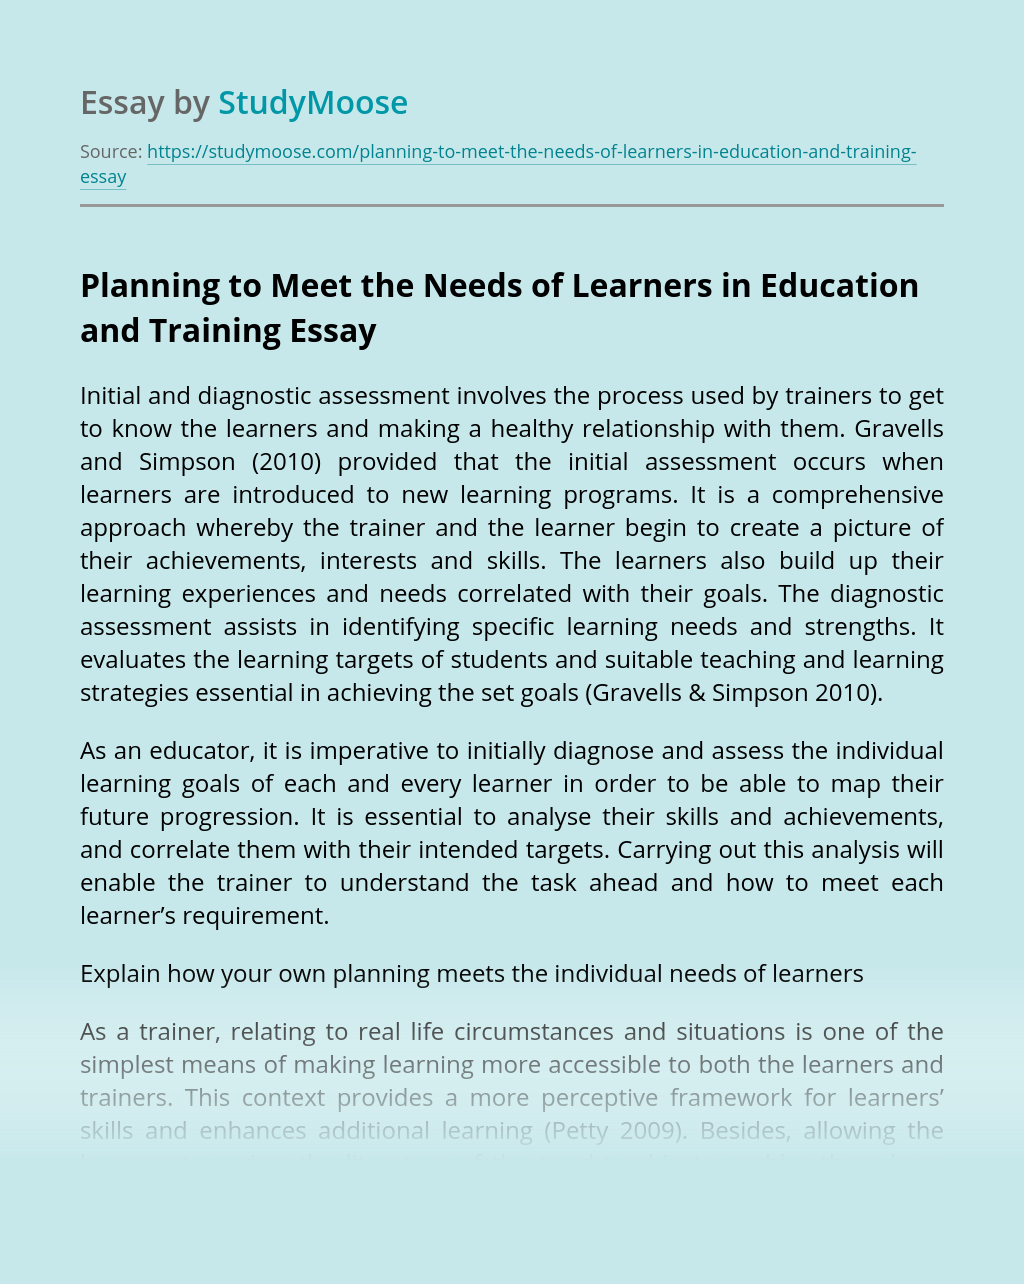 Planning to Meet the Needs of Learners in Education and Training